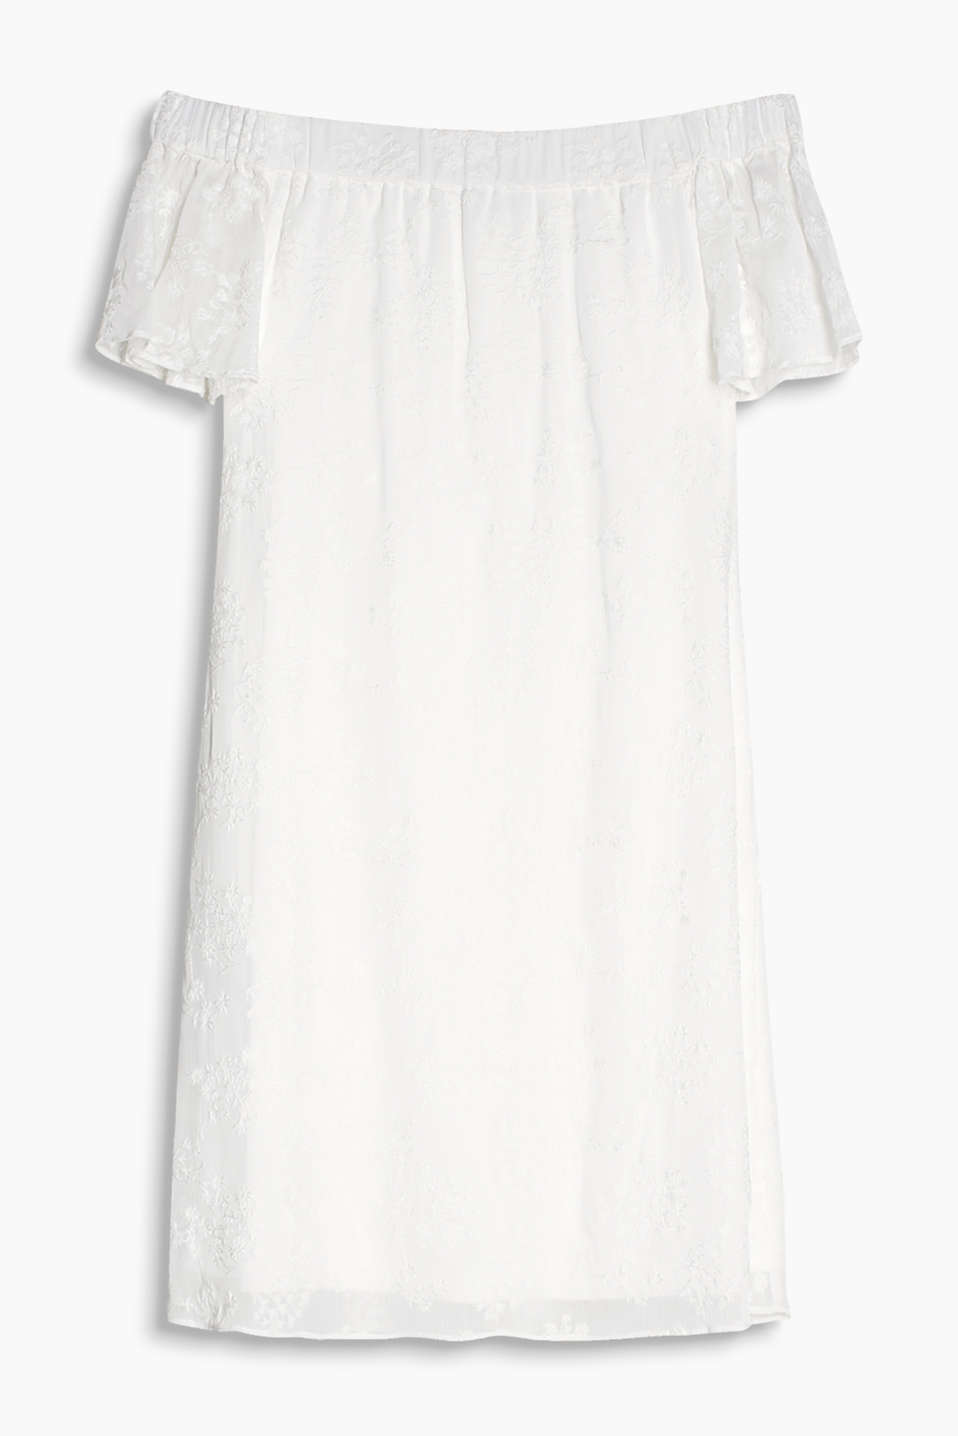 Finely crushed and feminine, off-the-shoulder dress with jacquard flowers